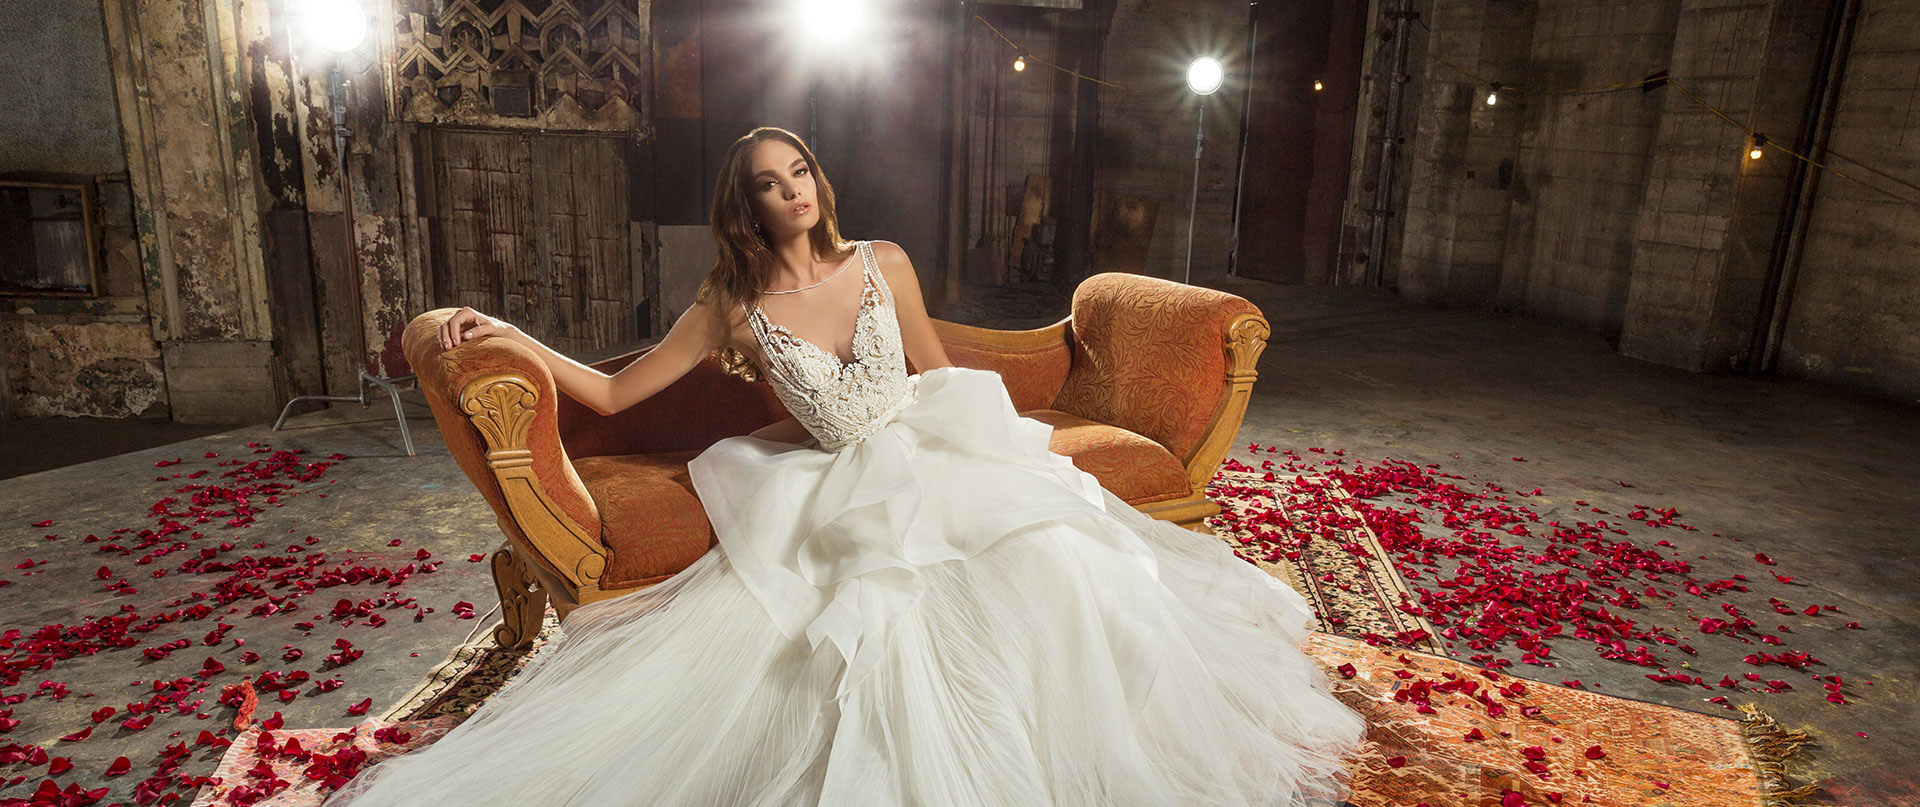 Brautmode, Abendkleider, Couture ǀ Honeymoon Düsseldorf